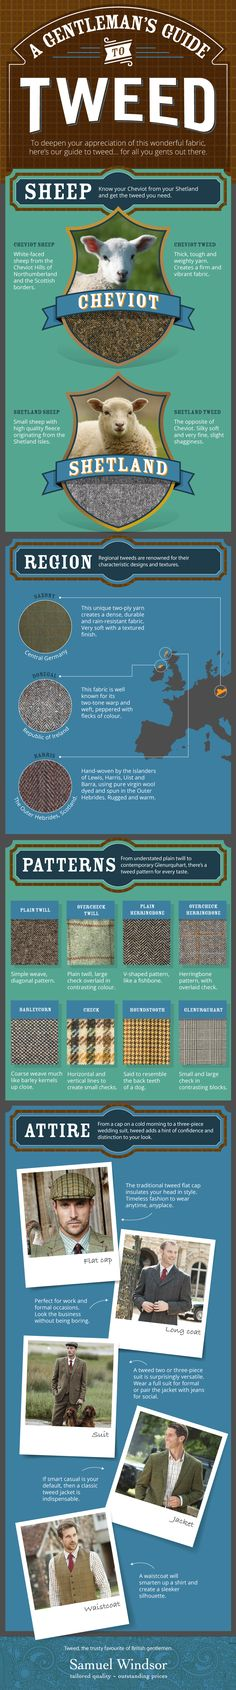 A gentleman's guide to tweed - Infographic